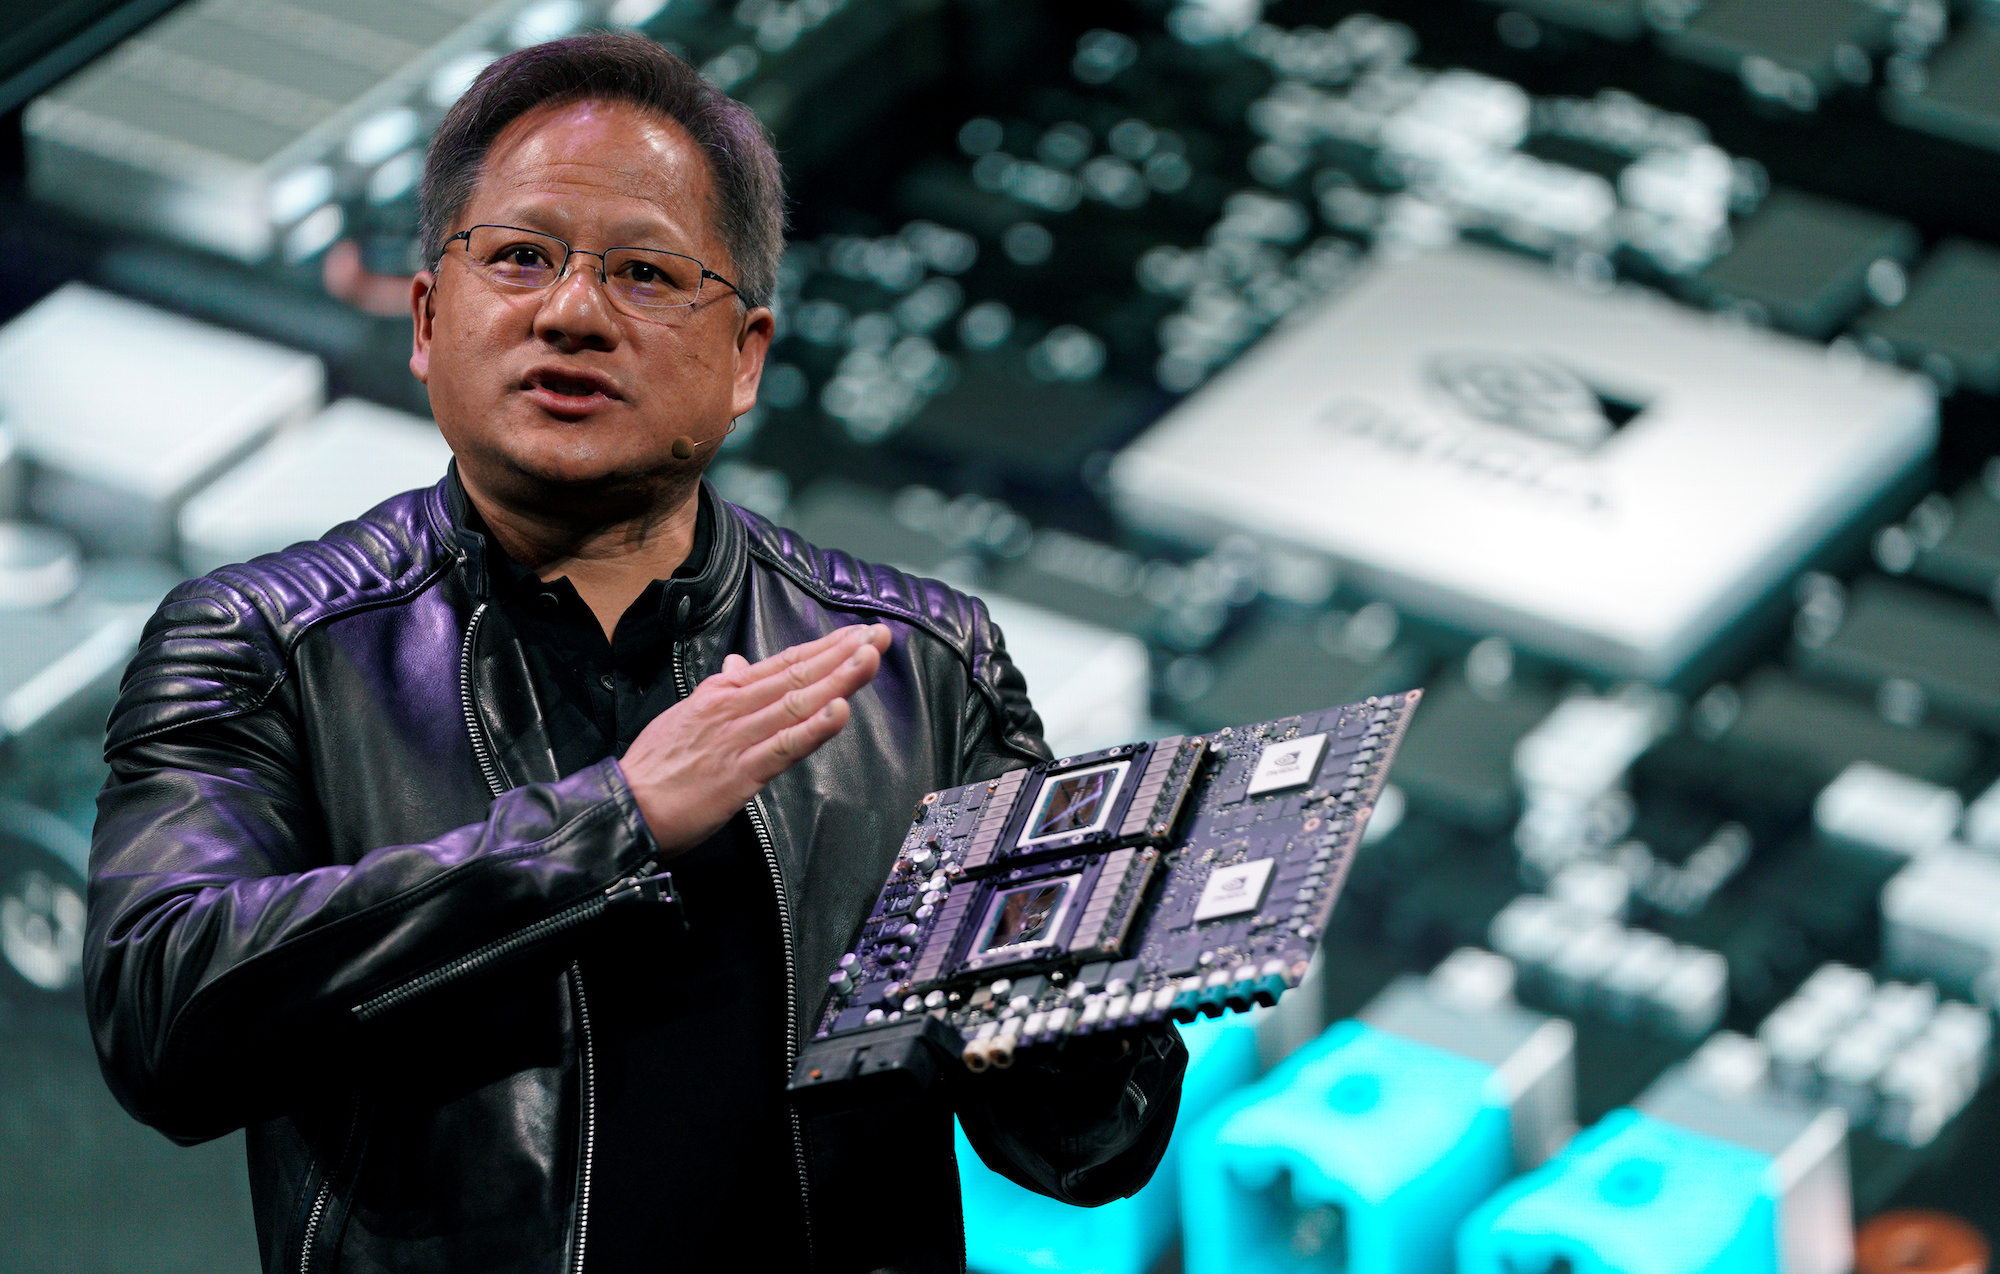 MORGAN STANLEY: Don't expect much upside from Nvidia's gaming business anytime soon (NVDA)